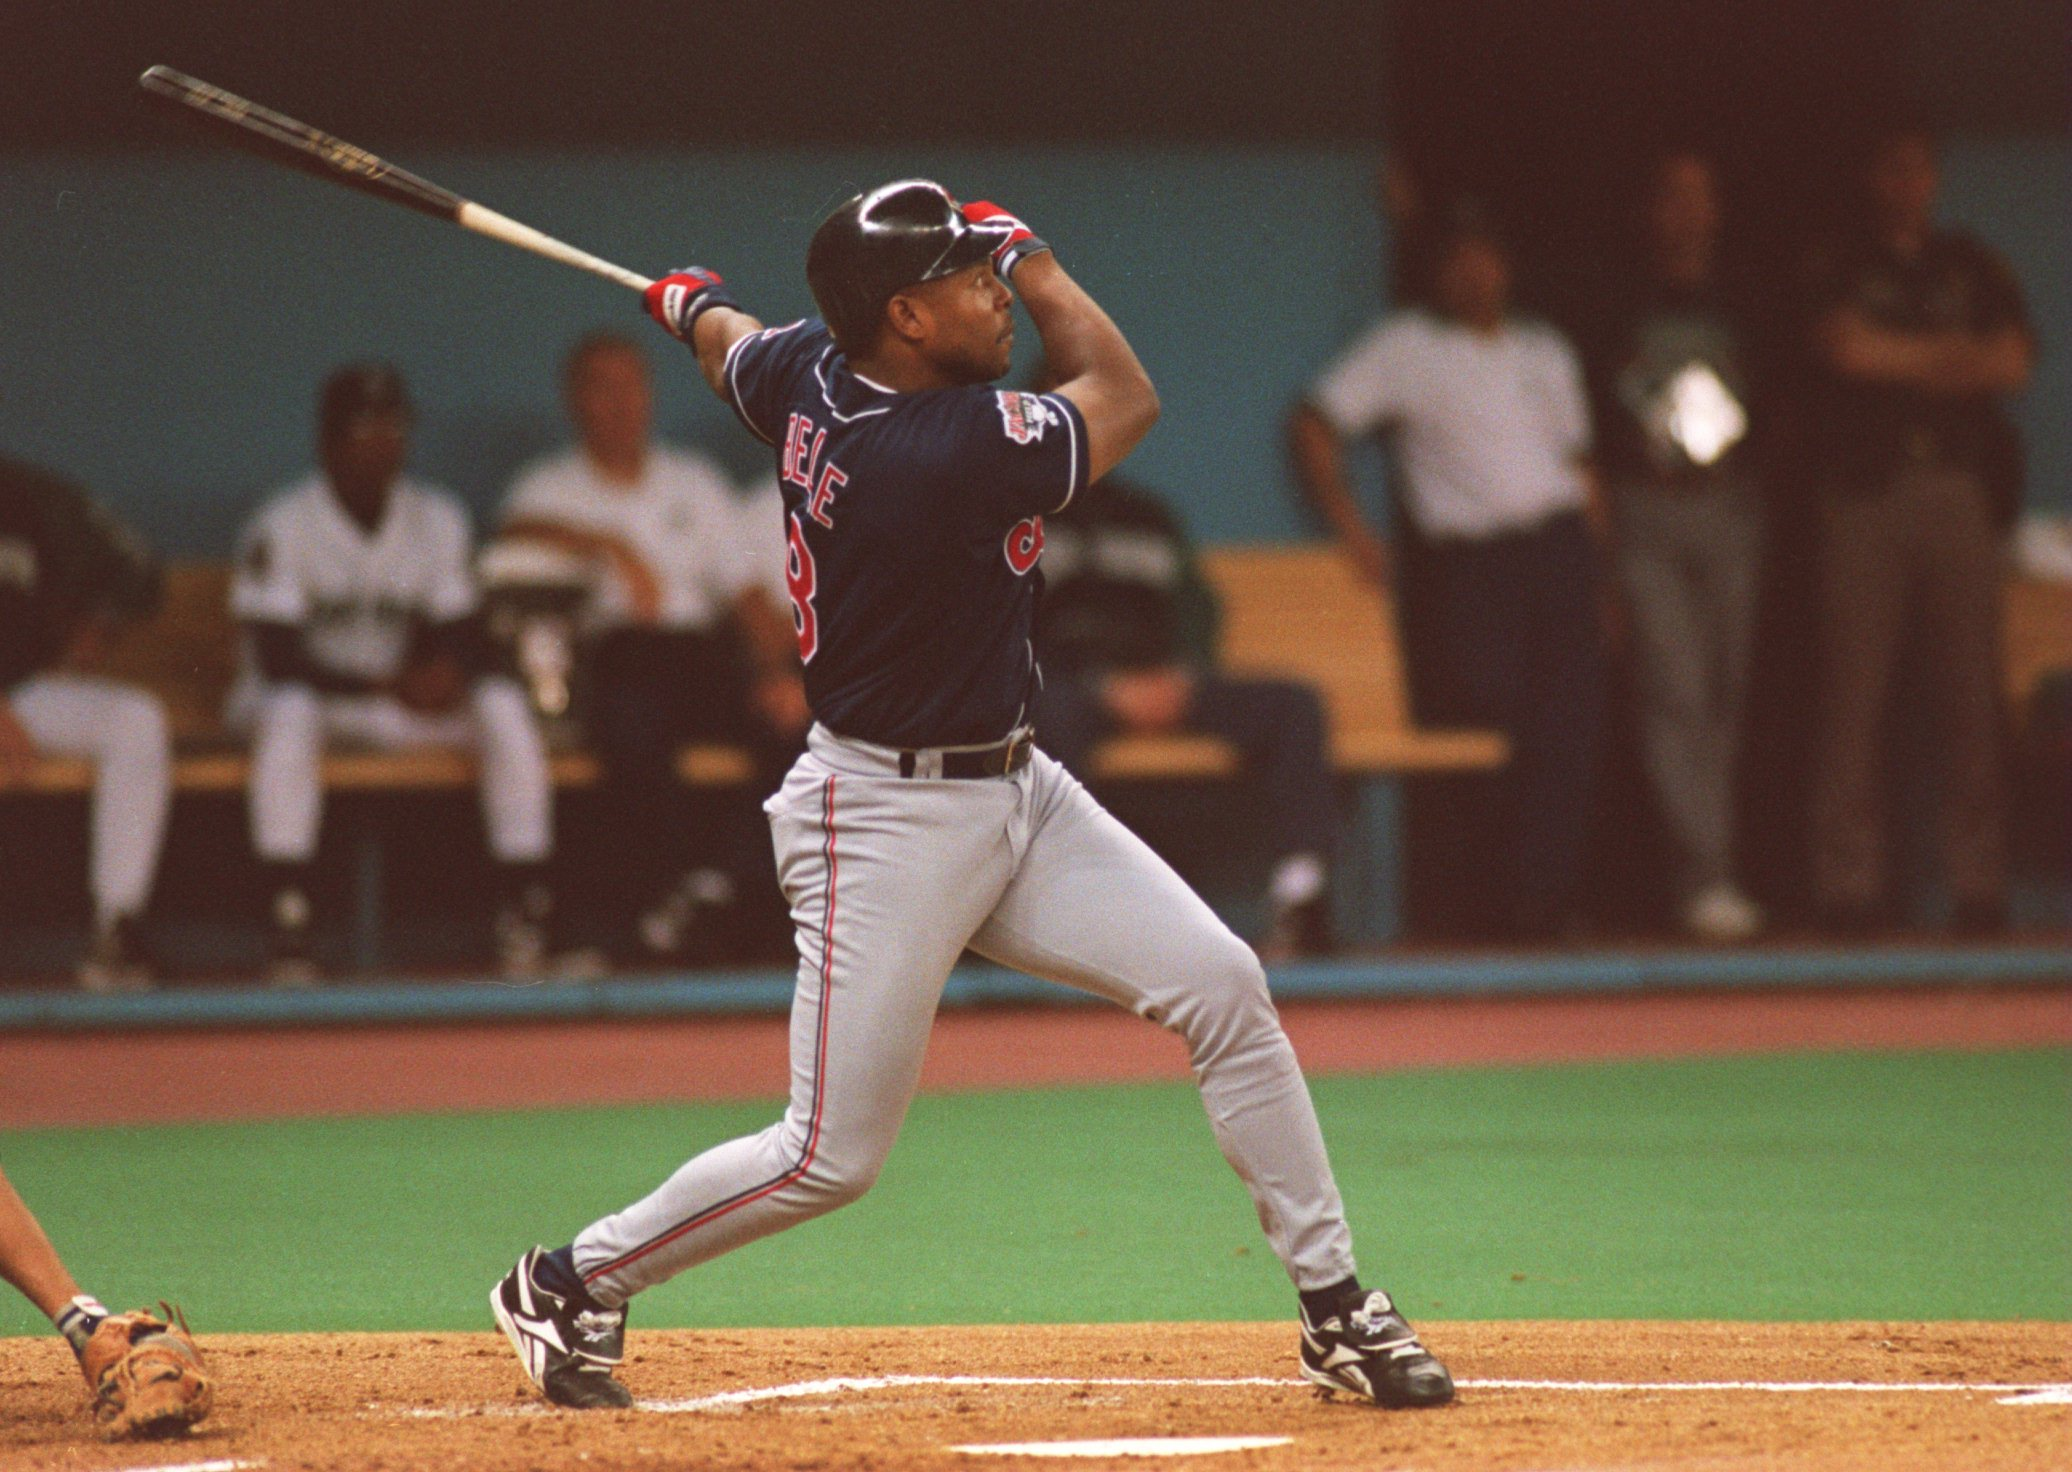 10 OCT 1995:  CLEVELAND RIGHT FIELDER BATTER ALBERT BELLE MAKES CONTACT WITH A PITCH DURING THE INDIANS GAME VERSUS THE SEATTLE MARINERS IN GAME ONE OF THE AMERICAN LEAGUE CHAMPIONSHIP SERIES AT THE KINGDOME IN SEATTLE, WASHINGTON.  SEATTLE WON THE GAME 3